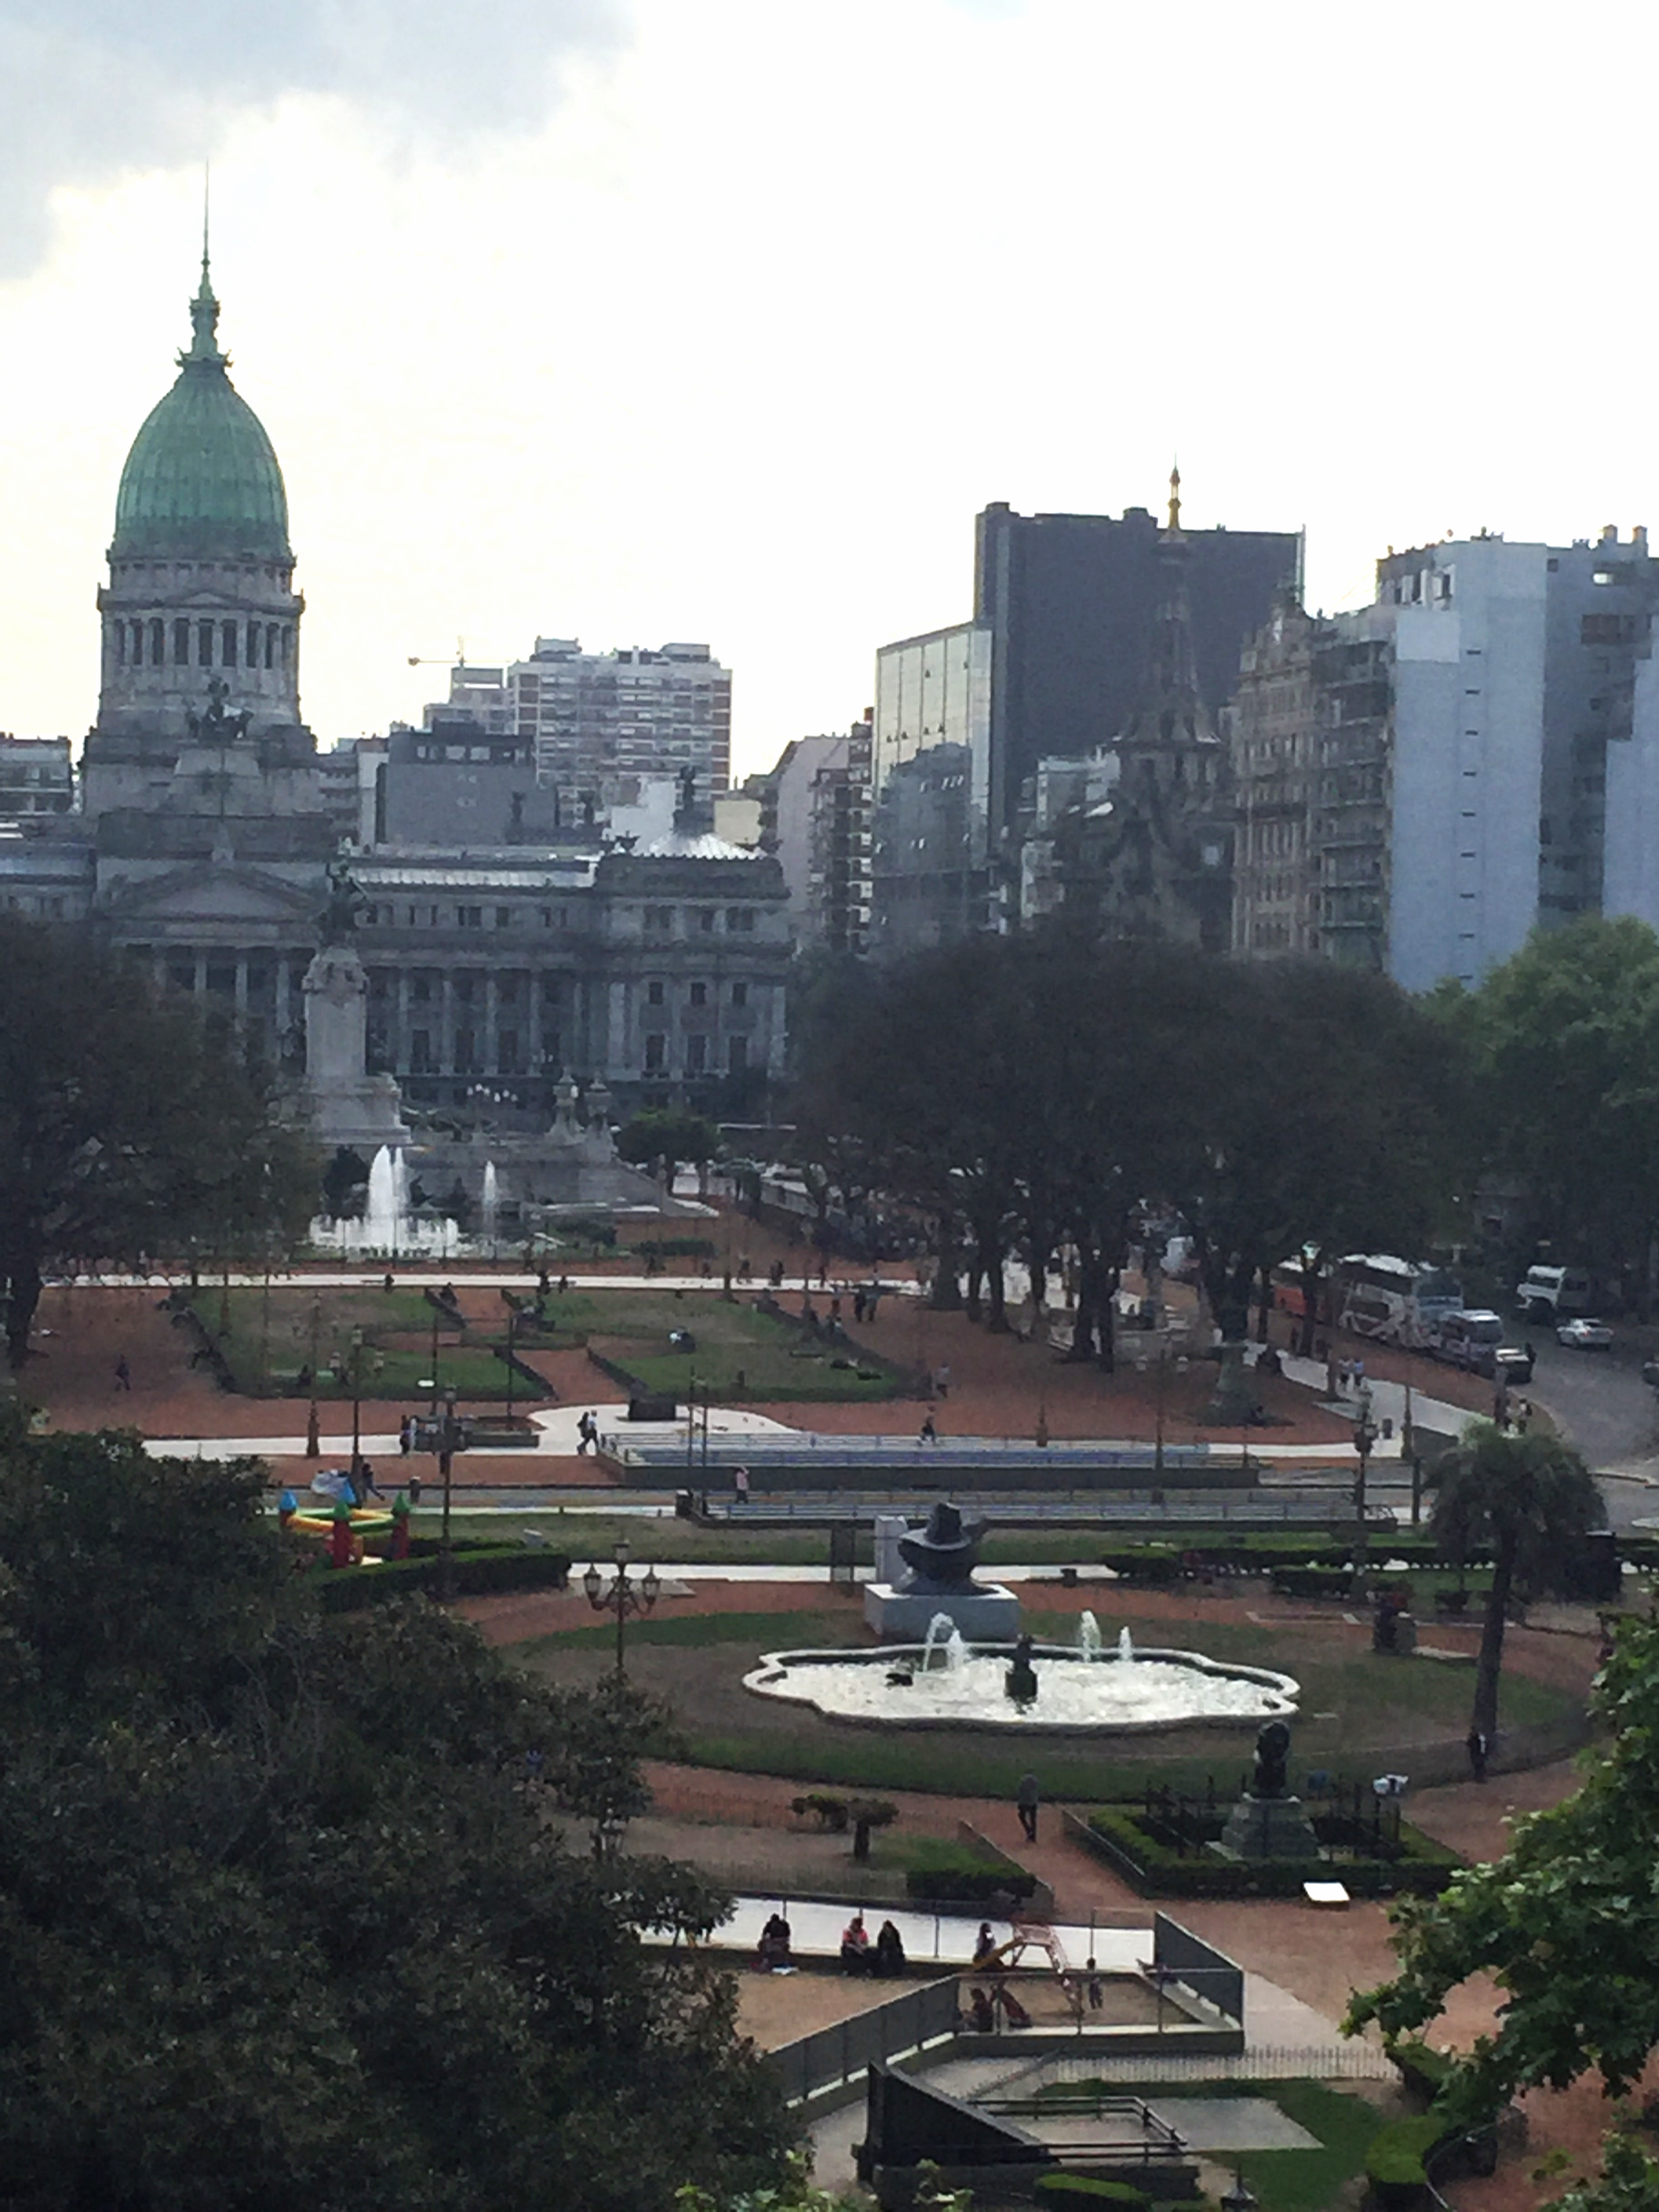 A view across Congreso Plaza from the balcony of Ignacio Liprandi Contemporary Art Gallery